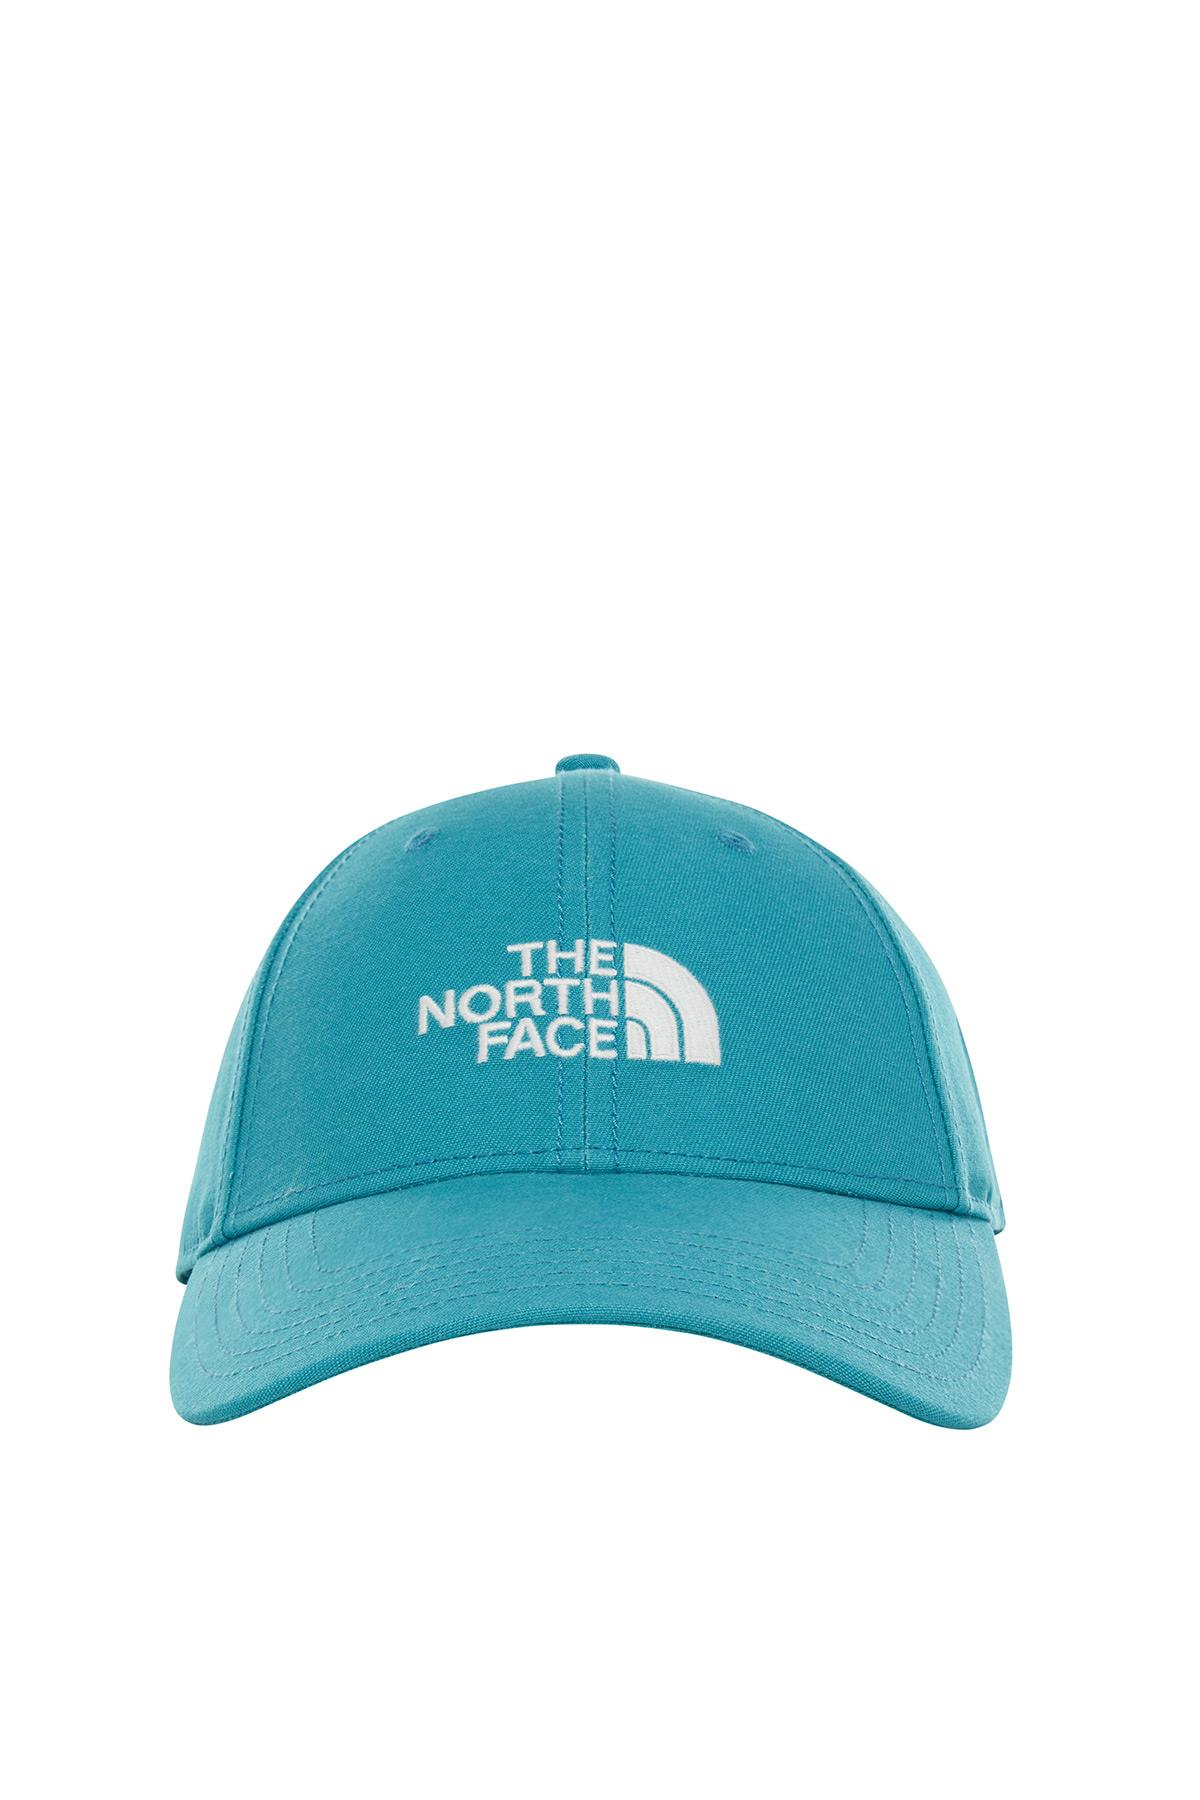 The Northface 66 Classic Hat T0Cf8Cm9D